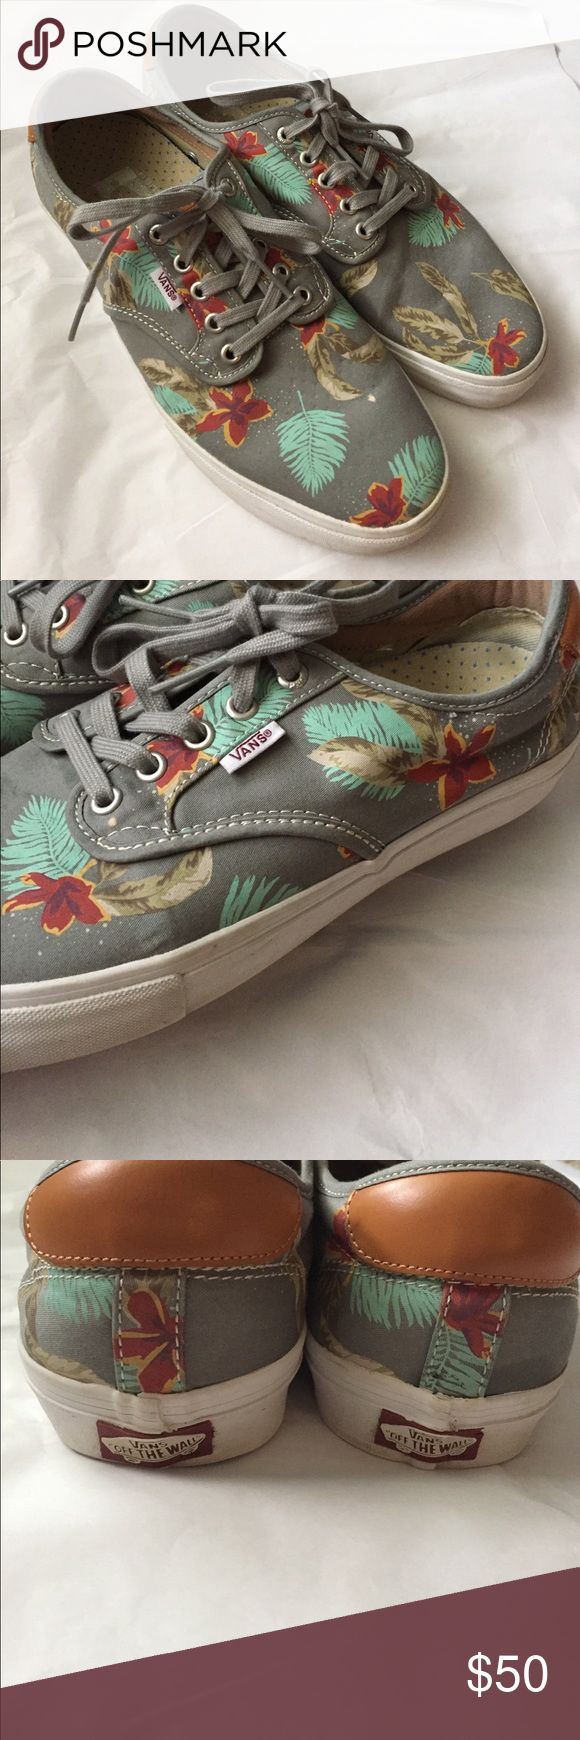 VANS Chima Ferguson! Mens! Vans Ultra Cush! Chima Ferguson Sydney! Gray with a sea print! Size 10.5! Great condition! Very comfortable! Rare style! Vans Shoes Sneakers